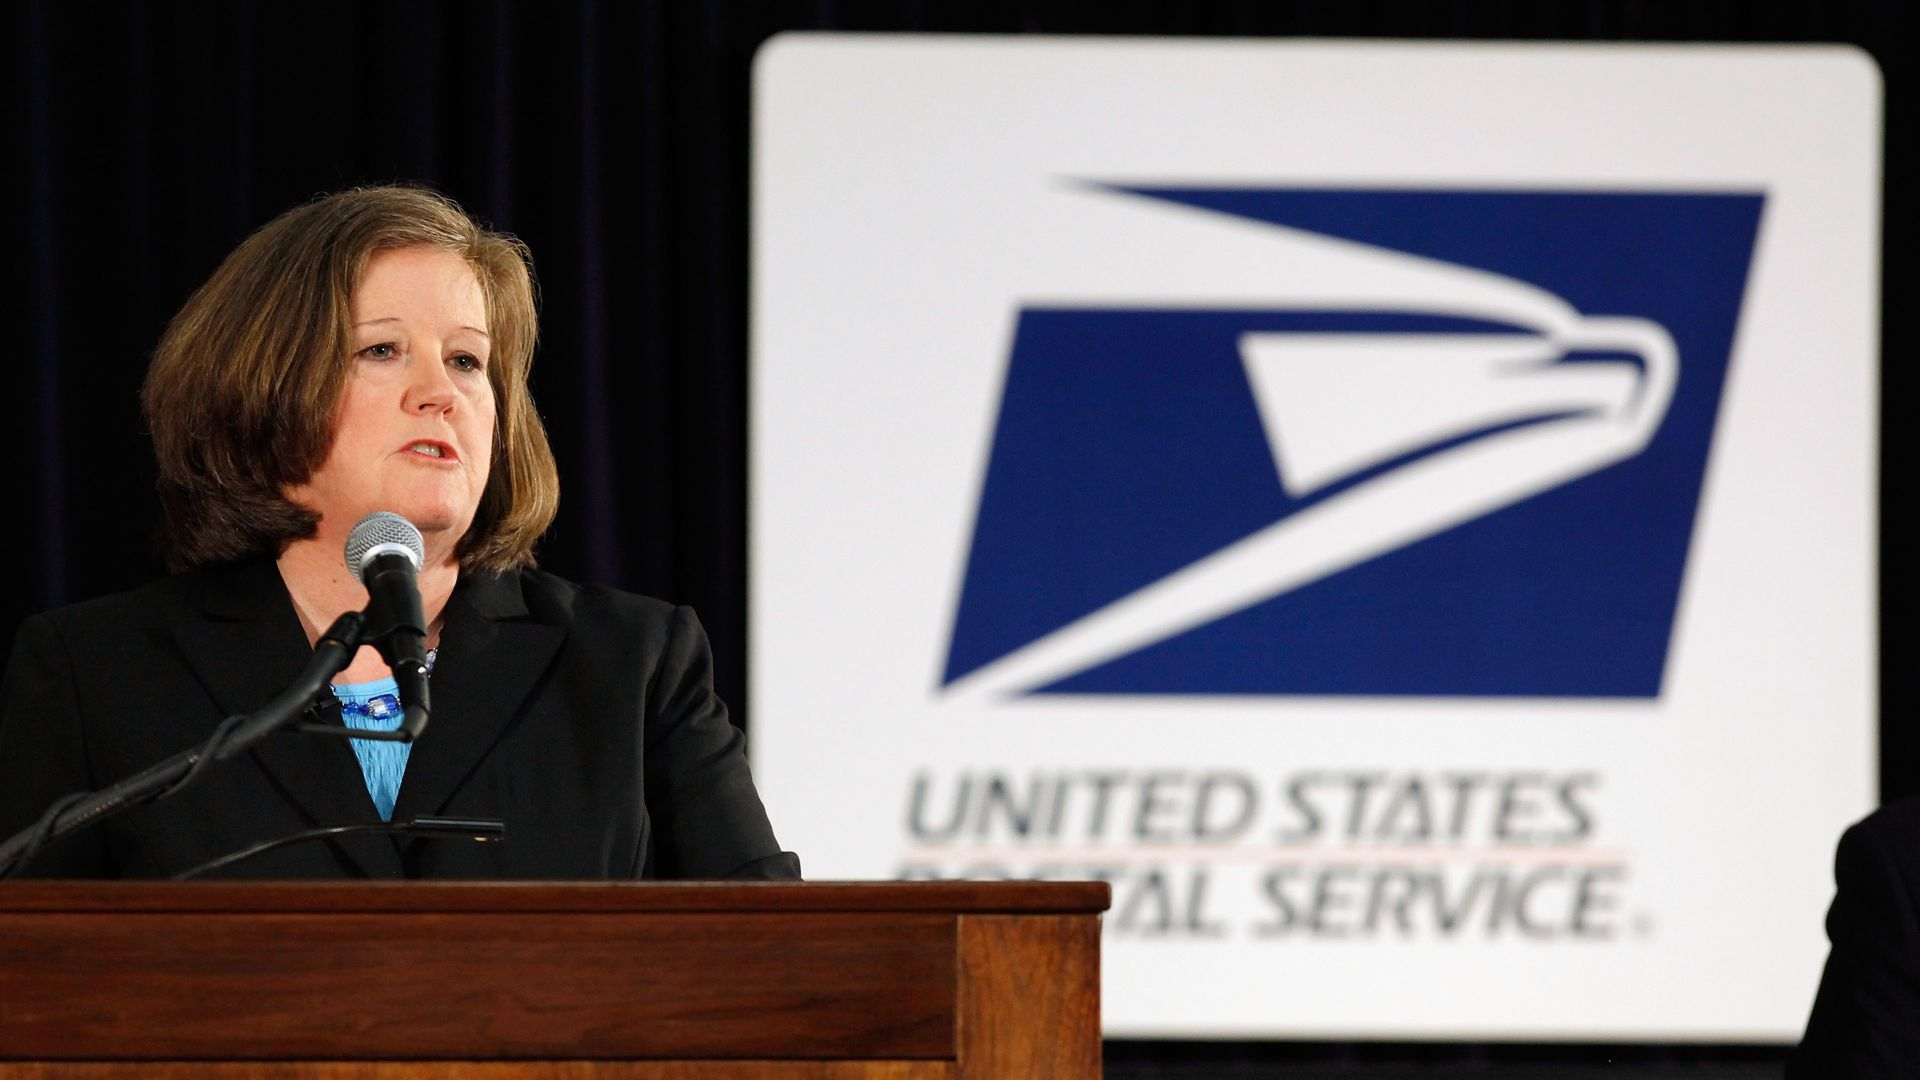 In this image, Brennan speaks from behind a podium while the U.S. Postal Service logo stands behind her.